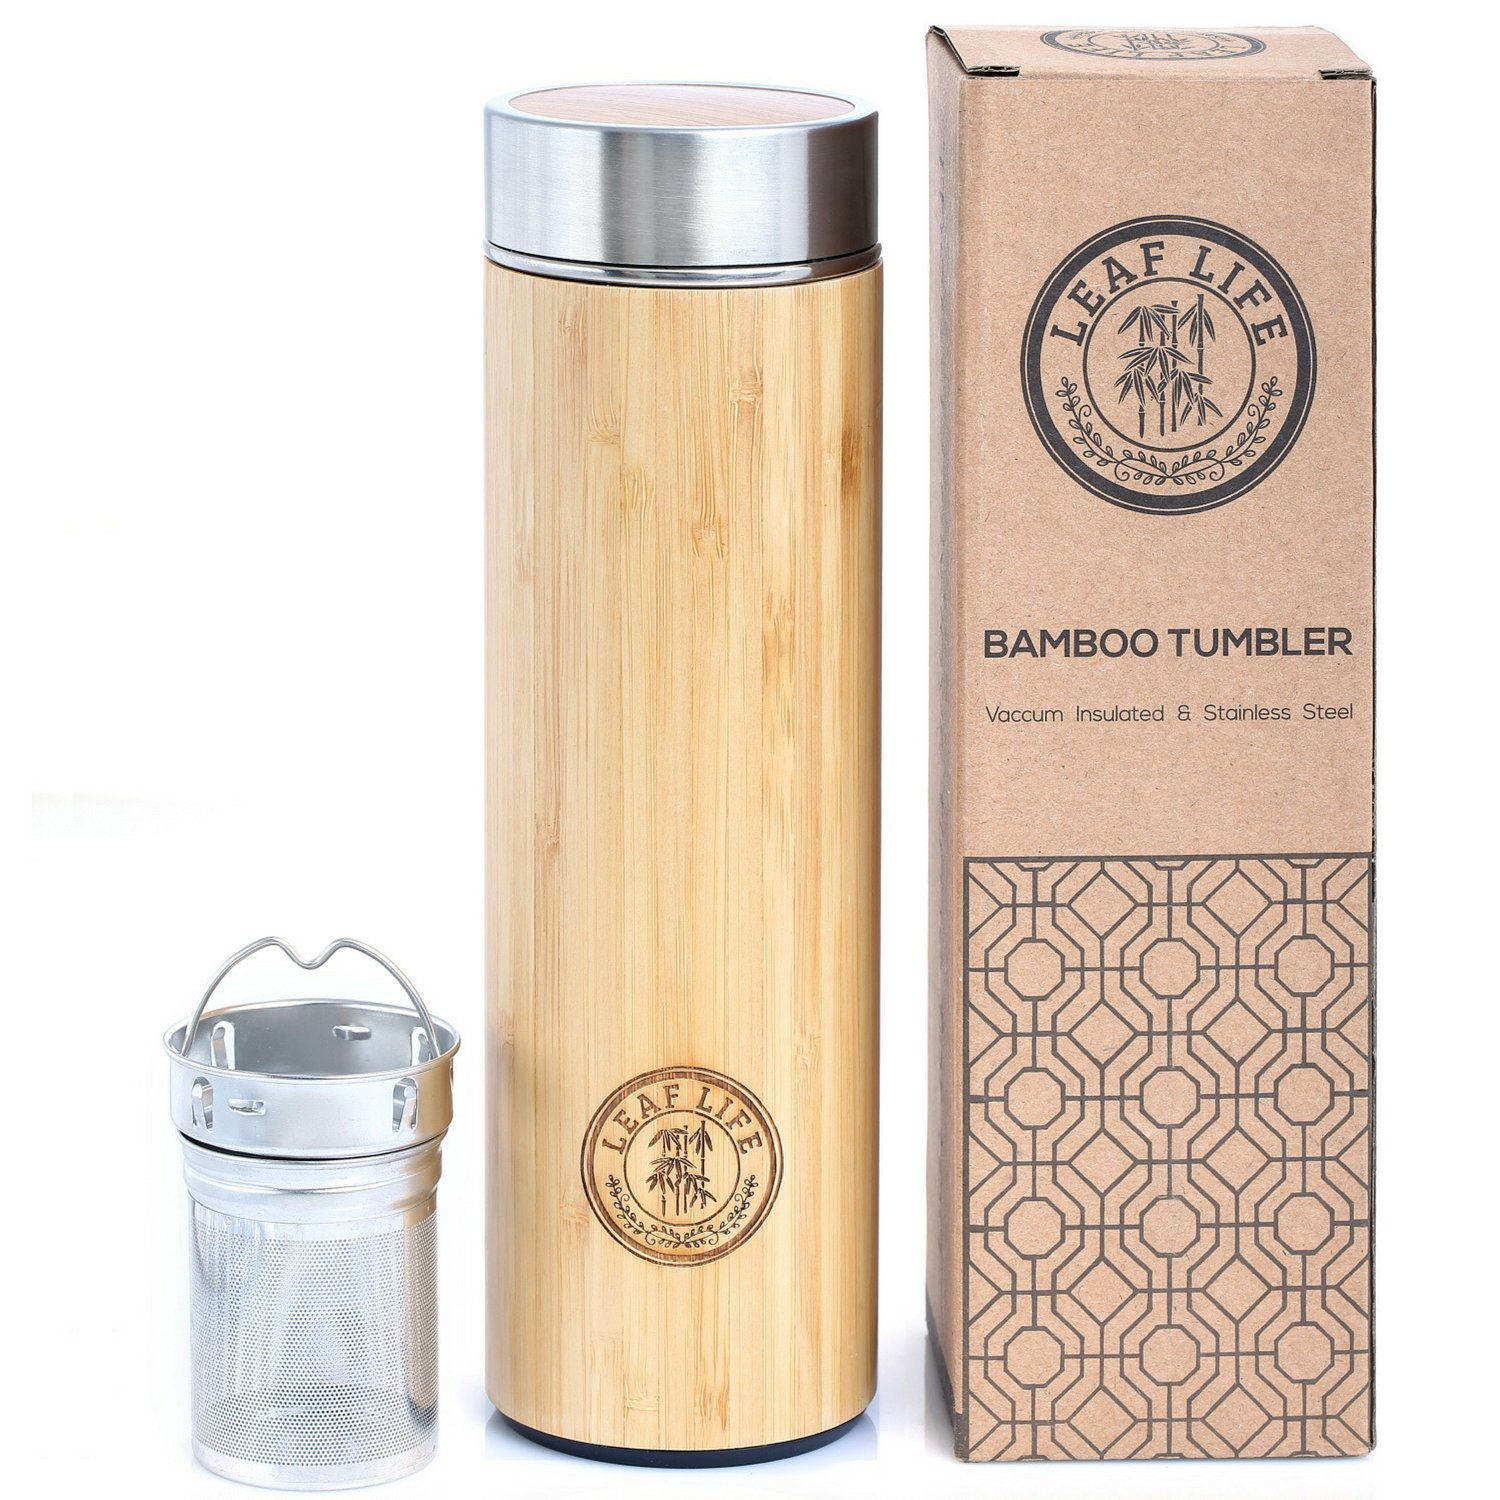 Original Bamboo Tumbler with Tea Infuser & Strainer by LeafLife | 17oz Stainless Steel Water Bottle | Insulated Coffee Travel Mug | BPA-Free | Gift For Tea Lovers | Mesh Filter for Brewing Loose Leaf